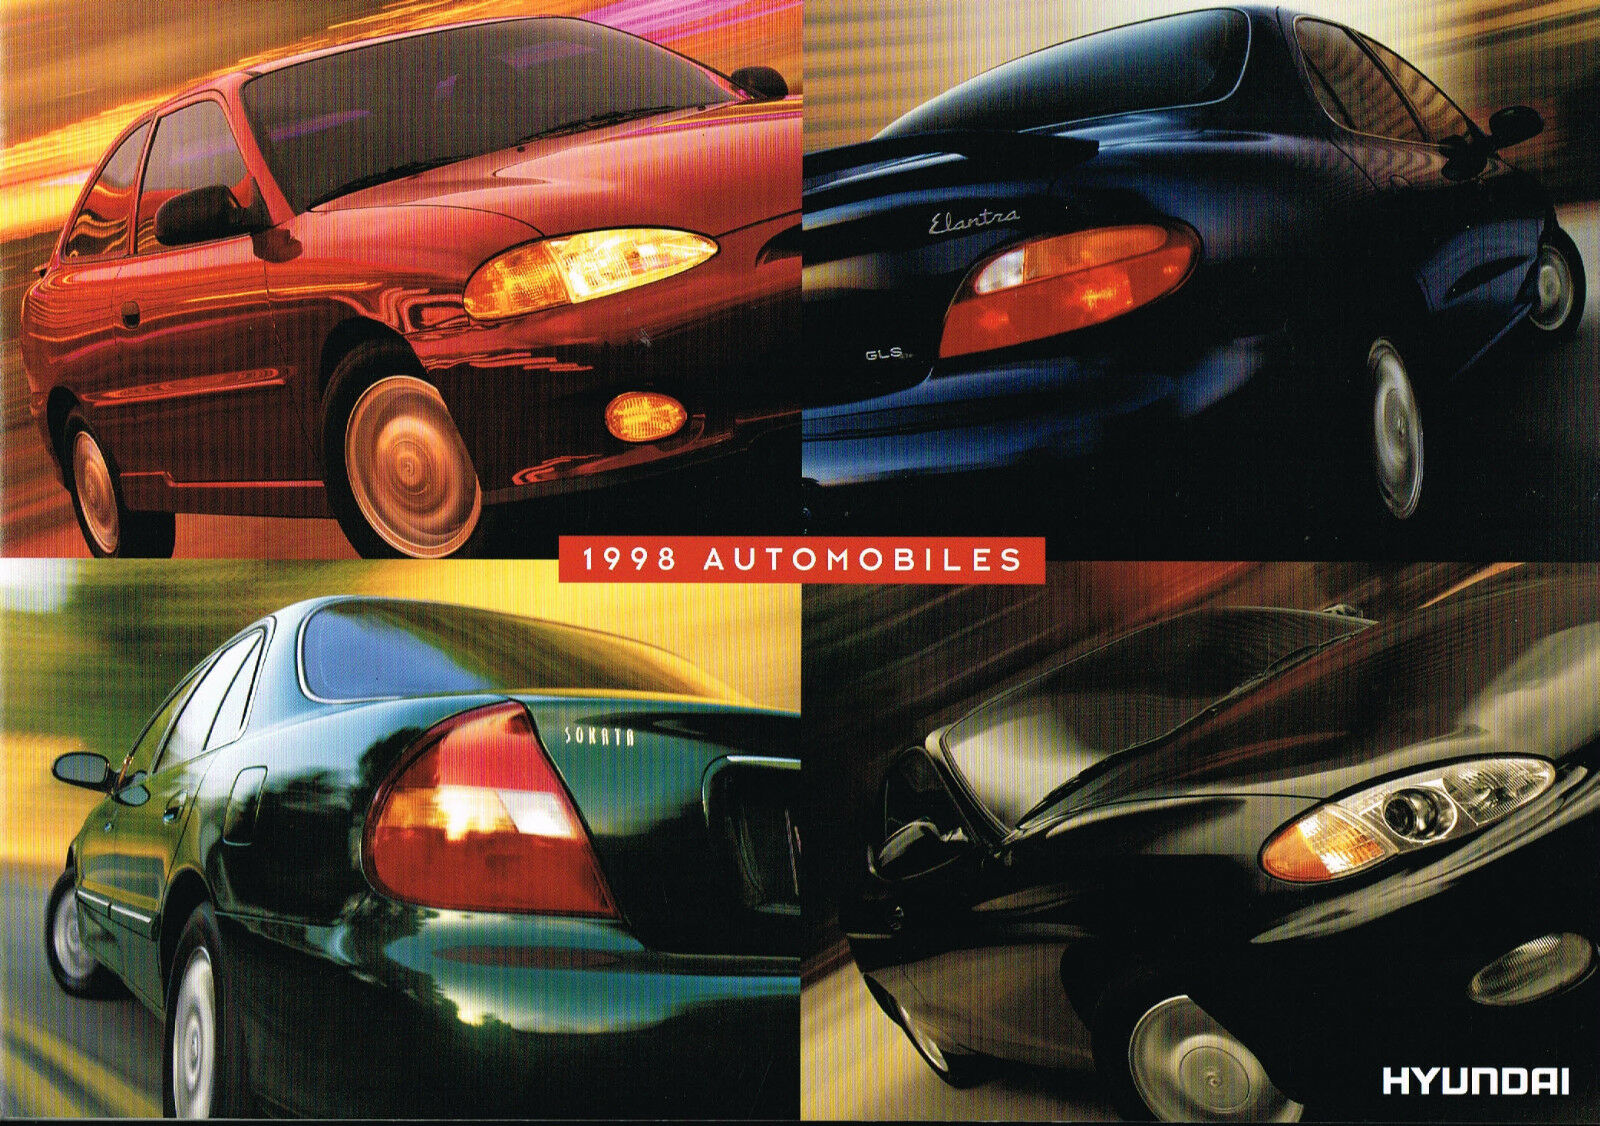 1998 HYUNDAI ACCENT / SONATA /ELANTRA/TIBURON Brochure/Catalog w/Color  Chart 1 of 6Only 1 available ...